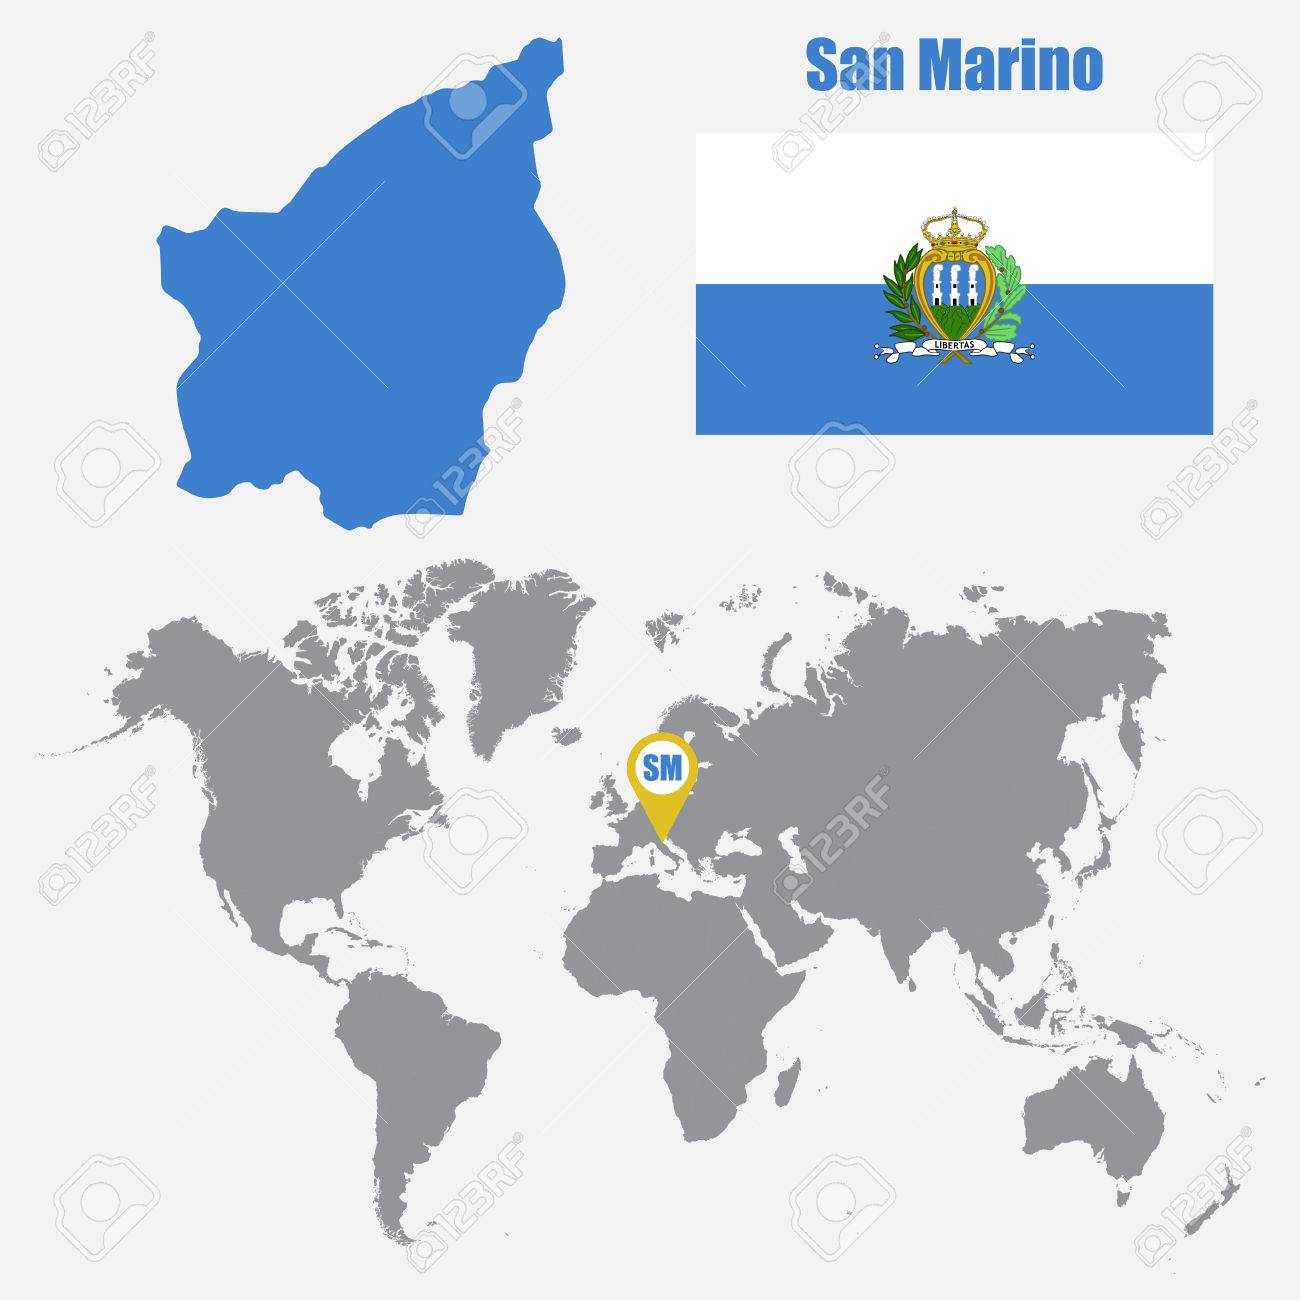 San Marino map on a world map with flag and map pointer. Vector.. on tuvalu on world map, palau on world map, japan on world map, uzbekistan on world map, malta on world map, estonia on world map, andorra on world map, slovenia on world map, djibouti on world map, luxembourg on world map, serbia on world map, liechtenstein on world map, monaco on world map, brunei on world map, liberia on world map, singapore on world map, vatican city on world map, montenegro on world map, kosovo on world map, liechtenstien on world map,